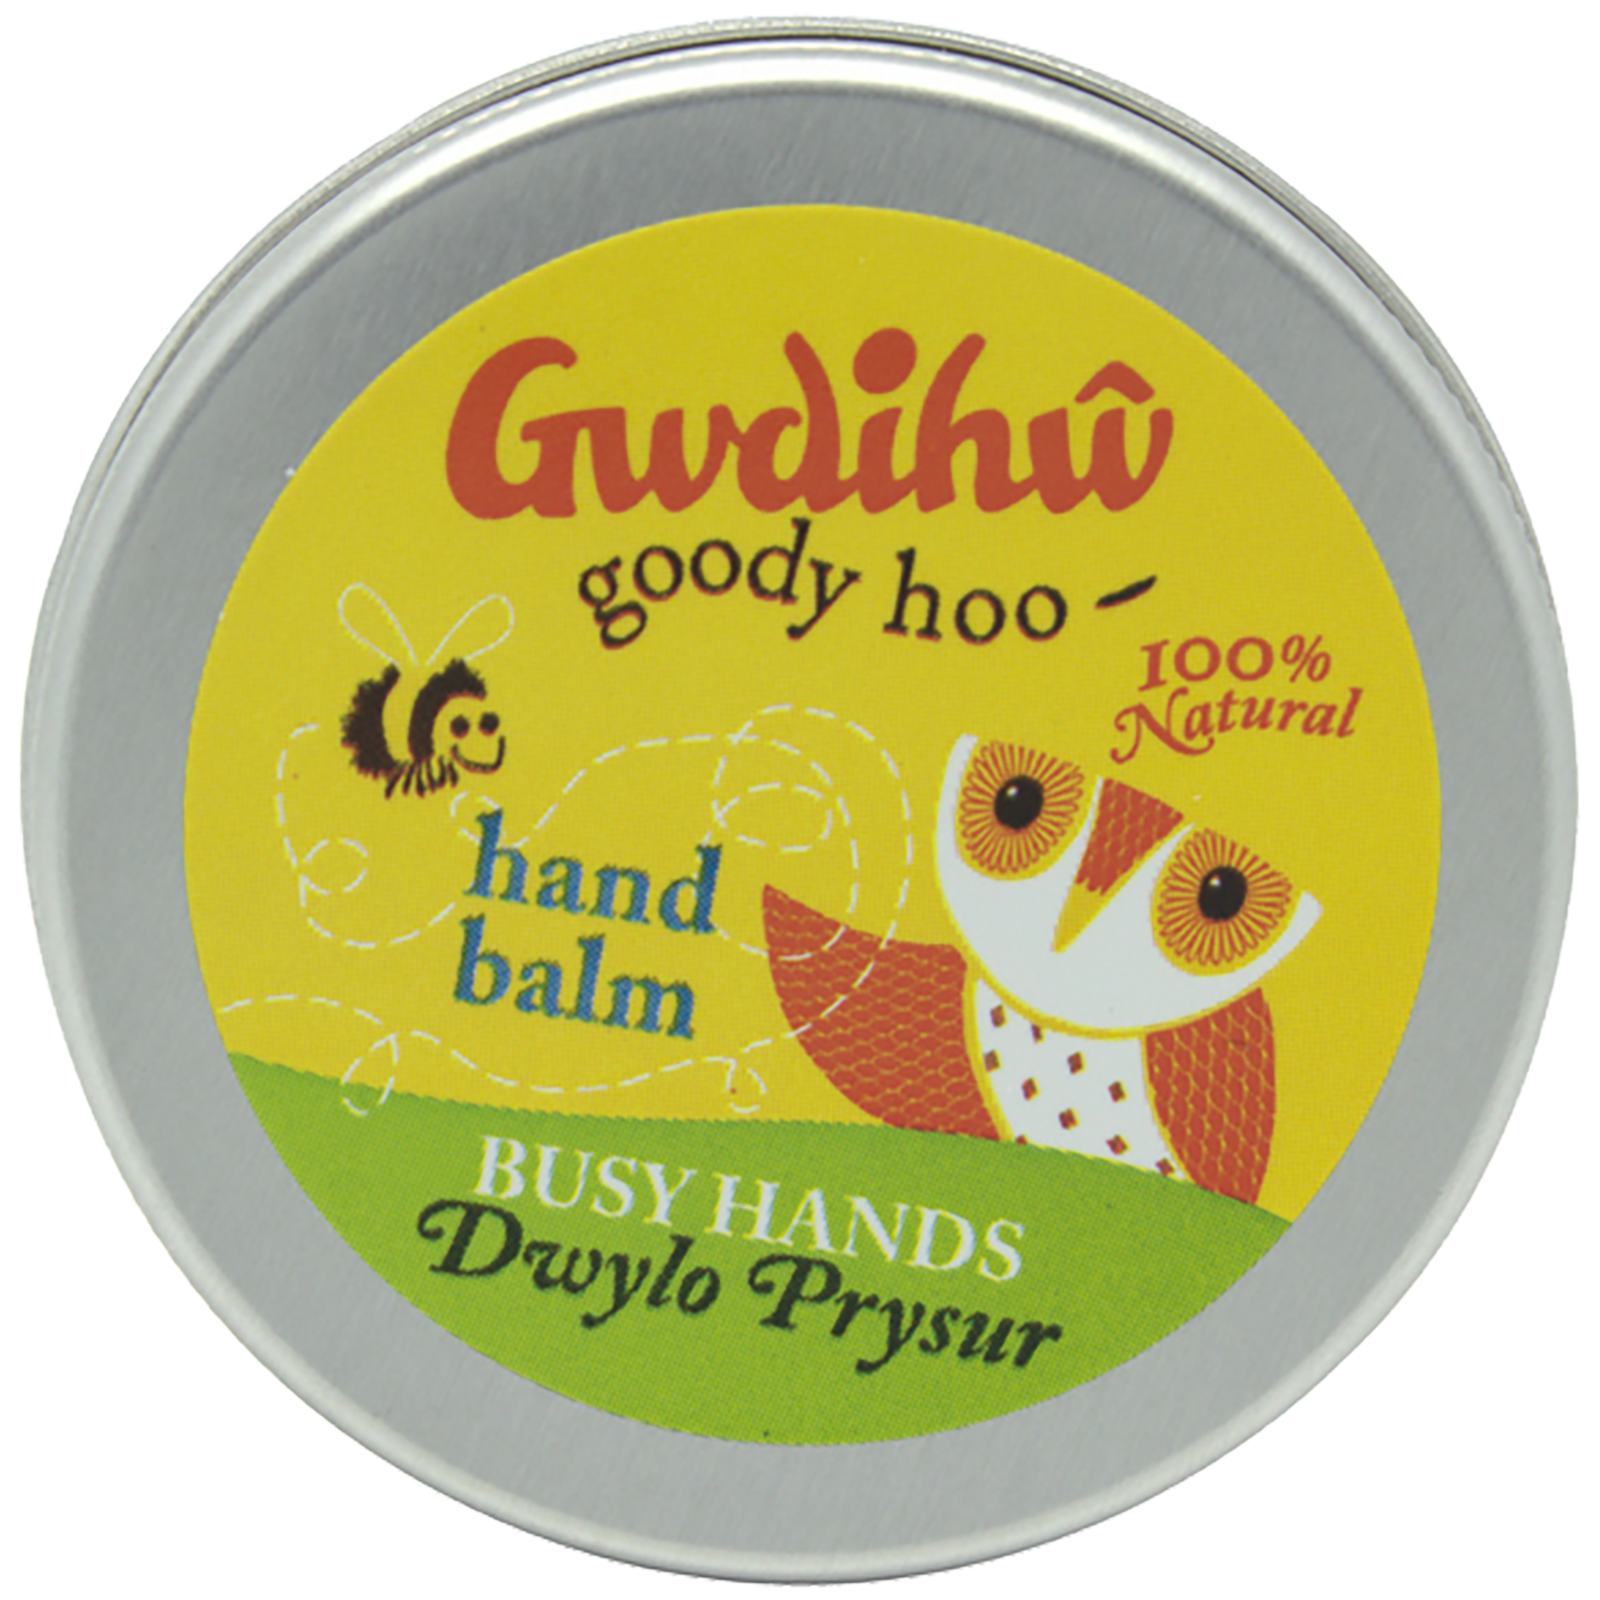 Busy Hands Balm